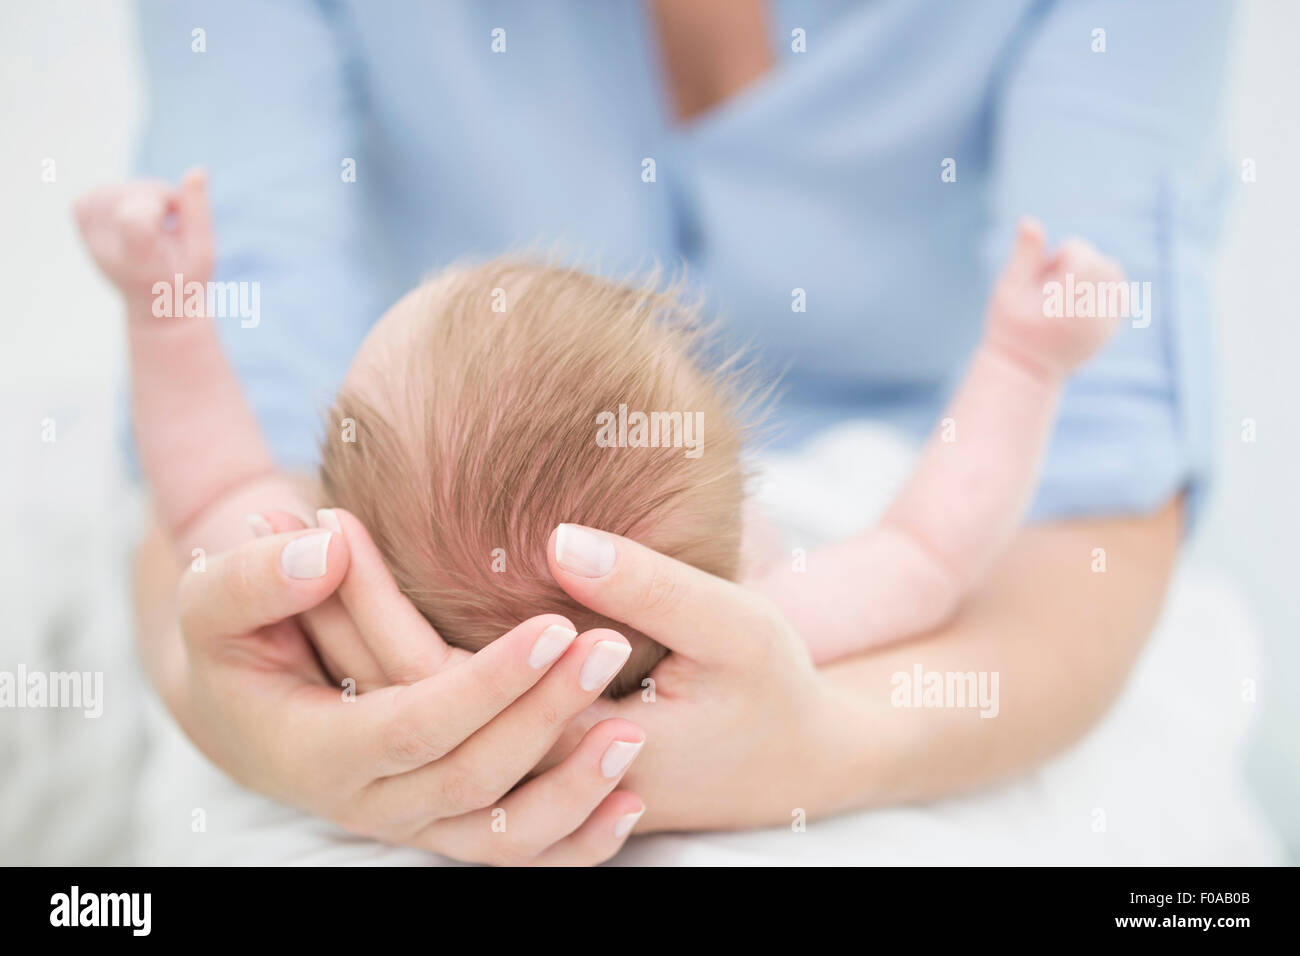 Mother cradling baby in arms - Stock Image